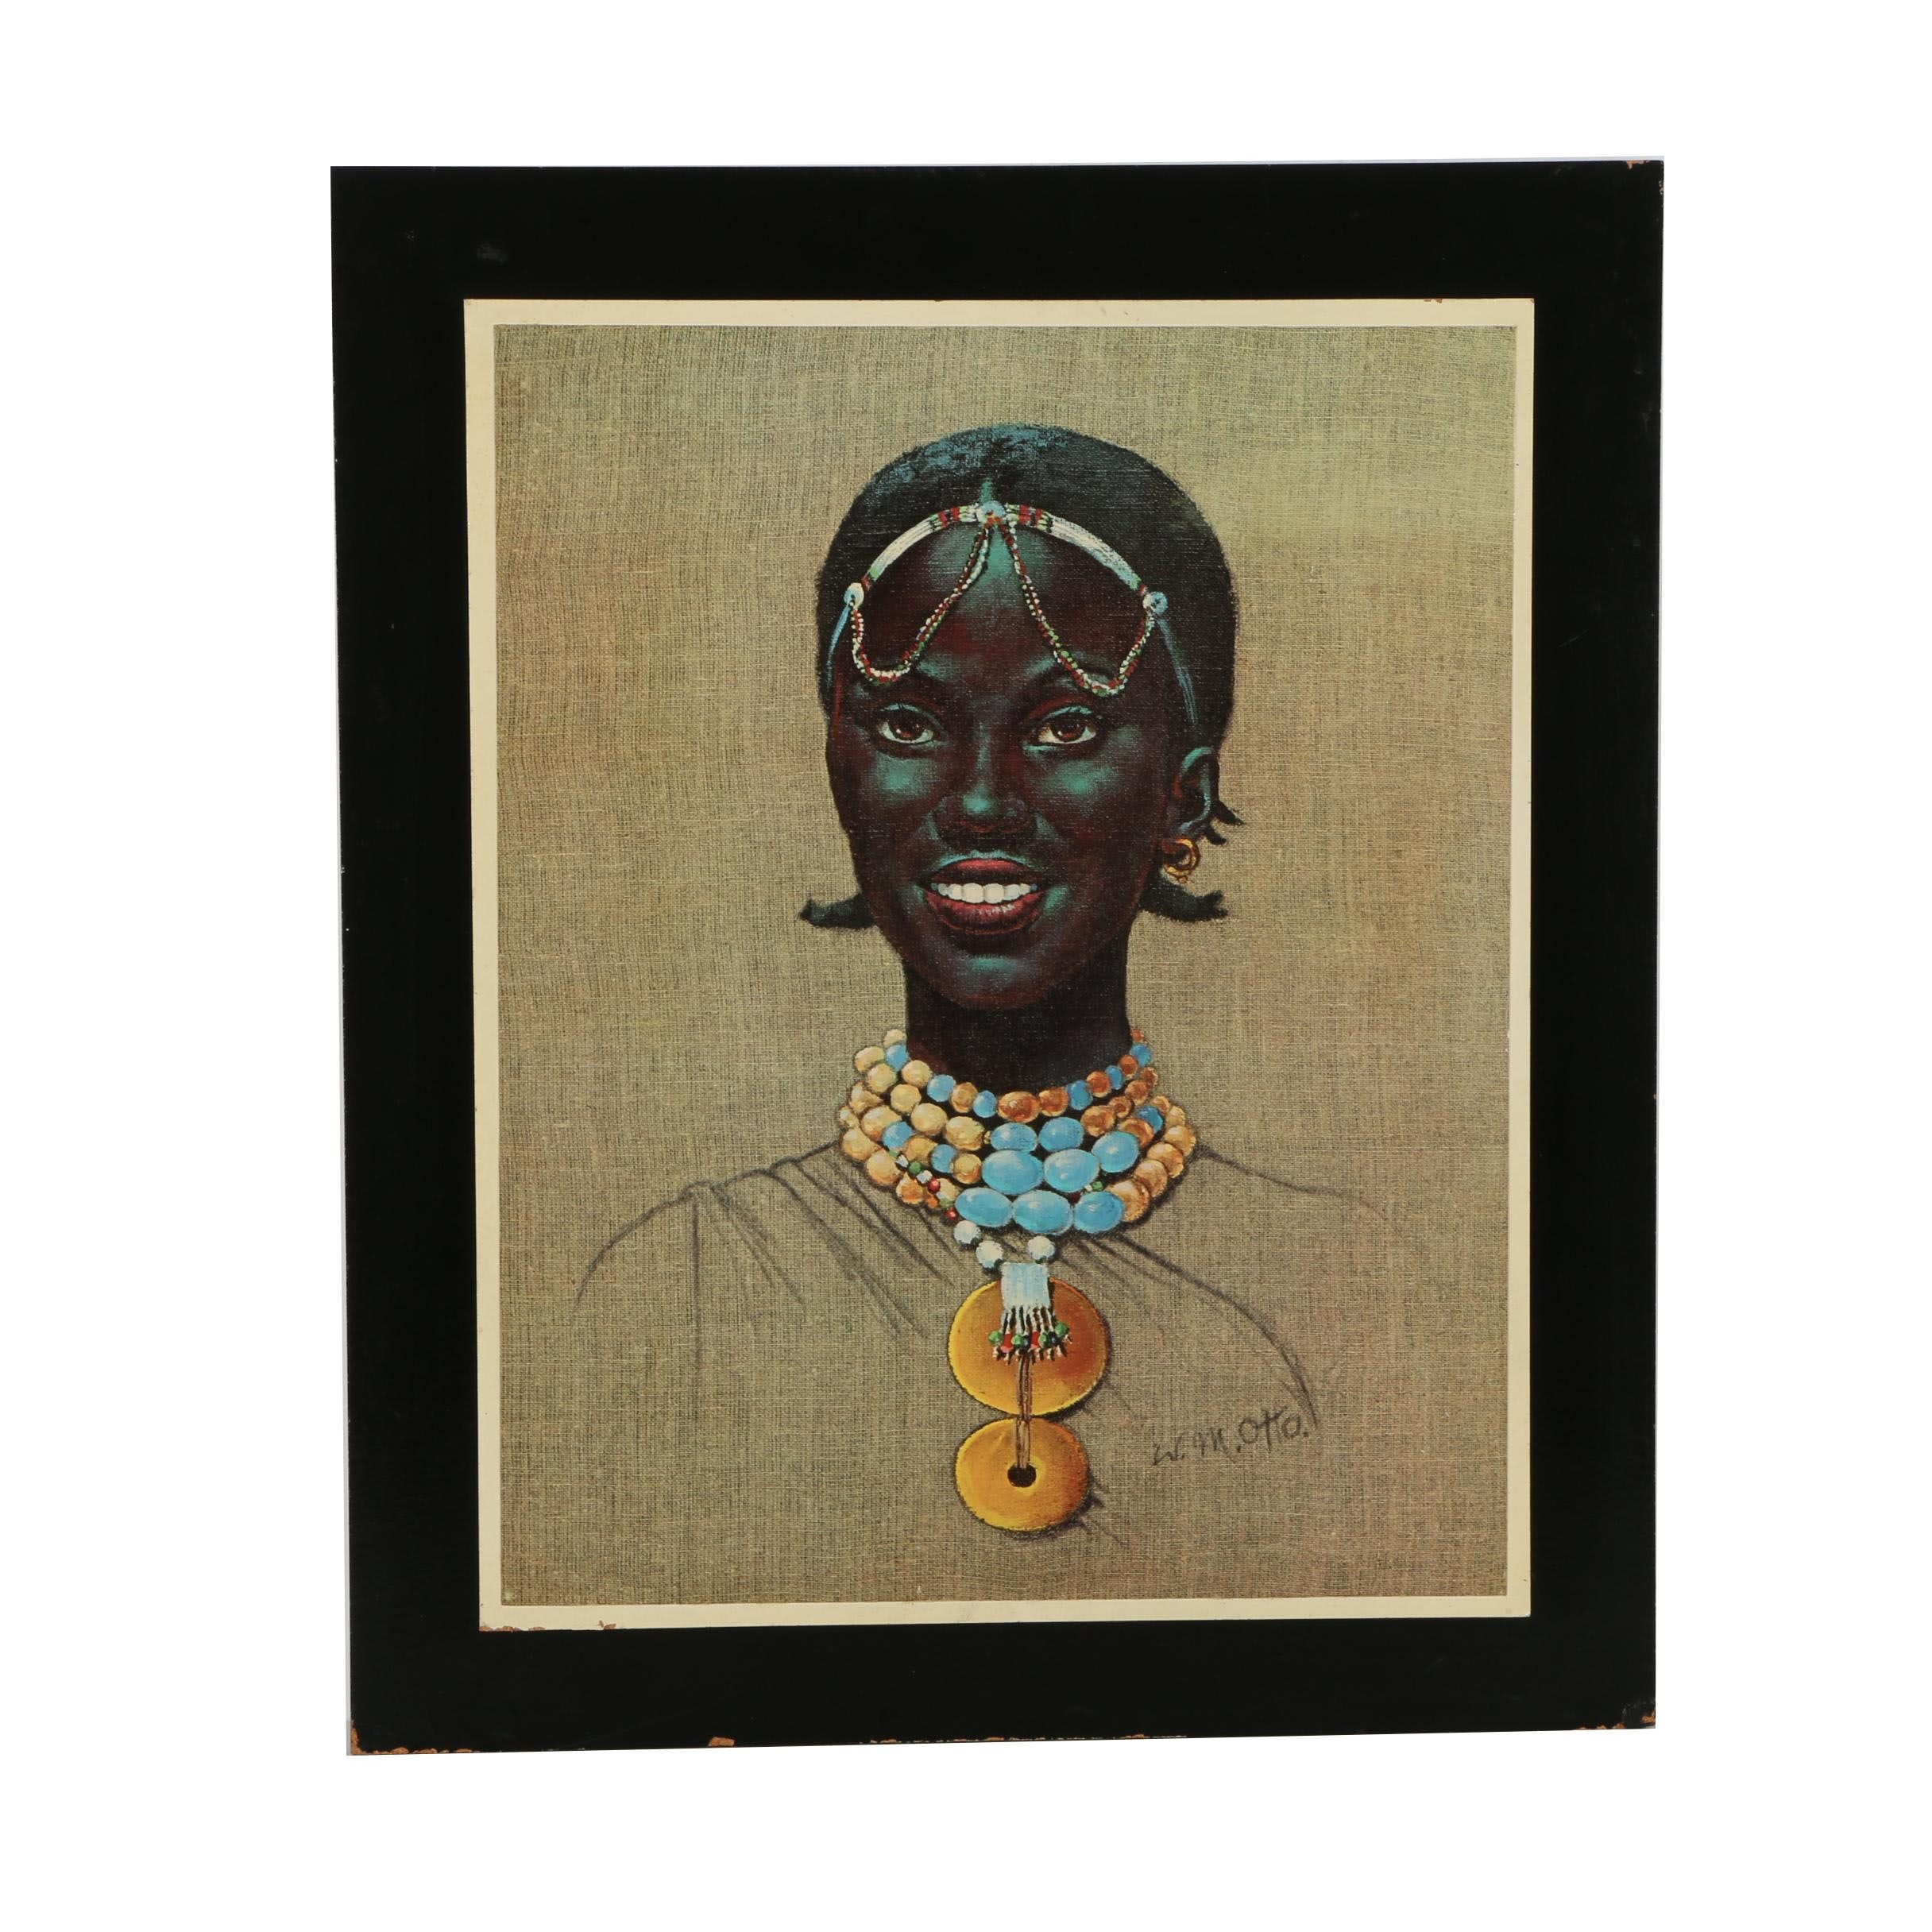 After Wolfgang Otto Offset Lithograph Print on Paper of an African Woman With Jewelry